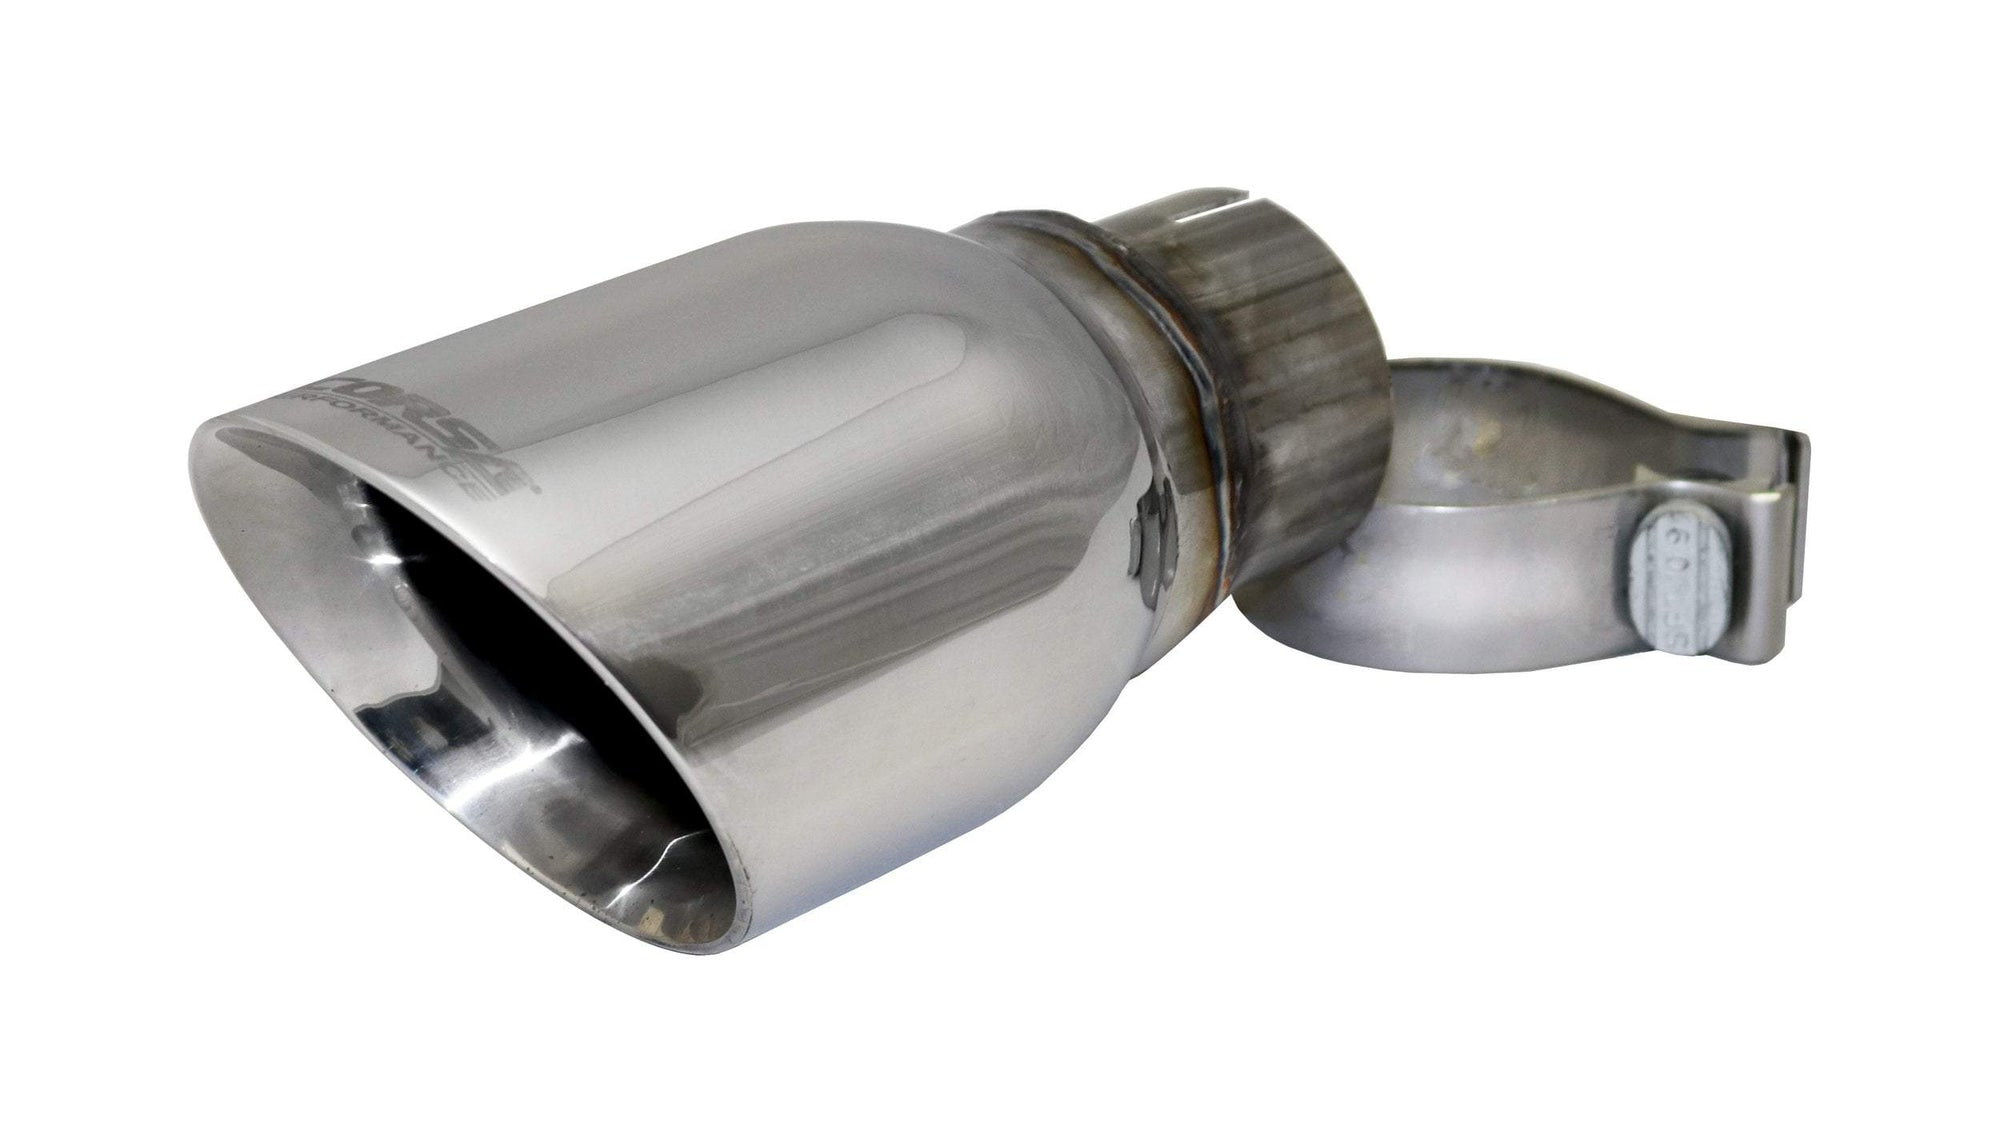 "CORSA PERFORMANCE Tip Kit Polished Tip Kit - Single 4.0"" Tip w/2.5"" diameter pipe (TK004)"